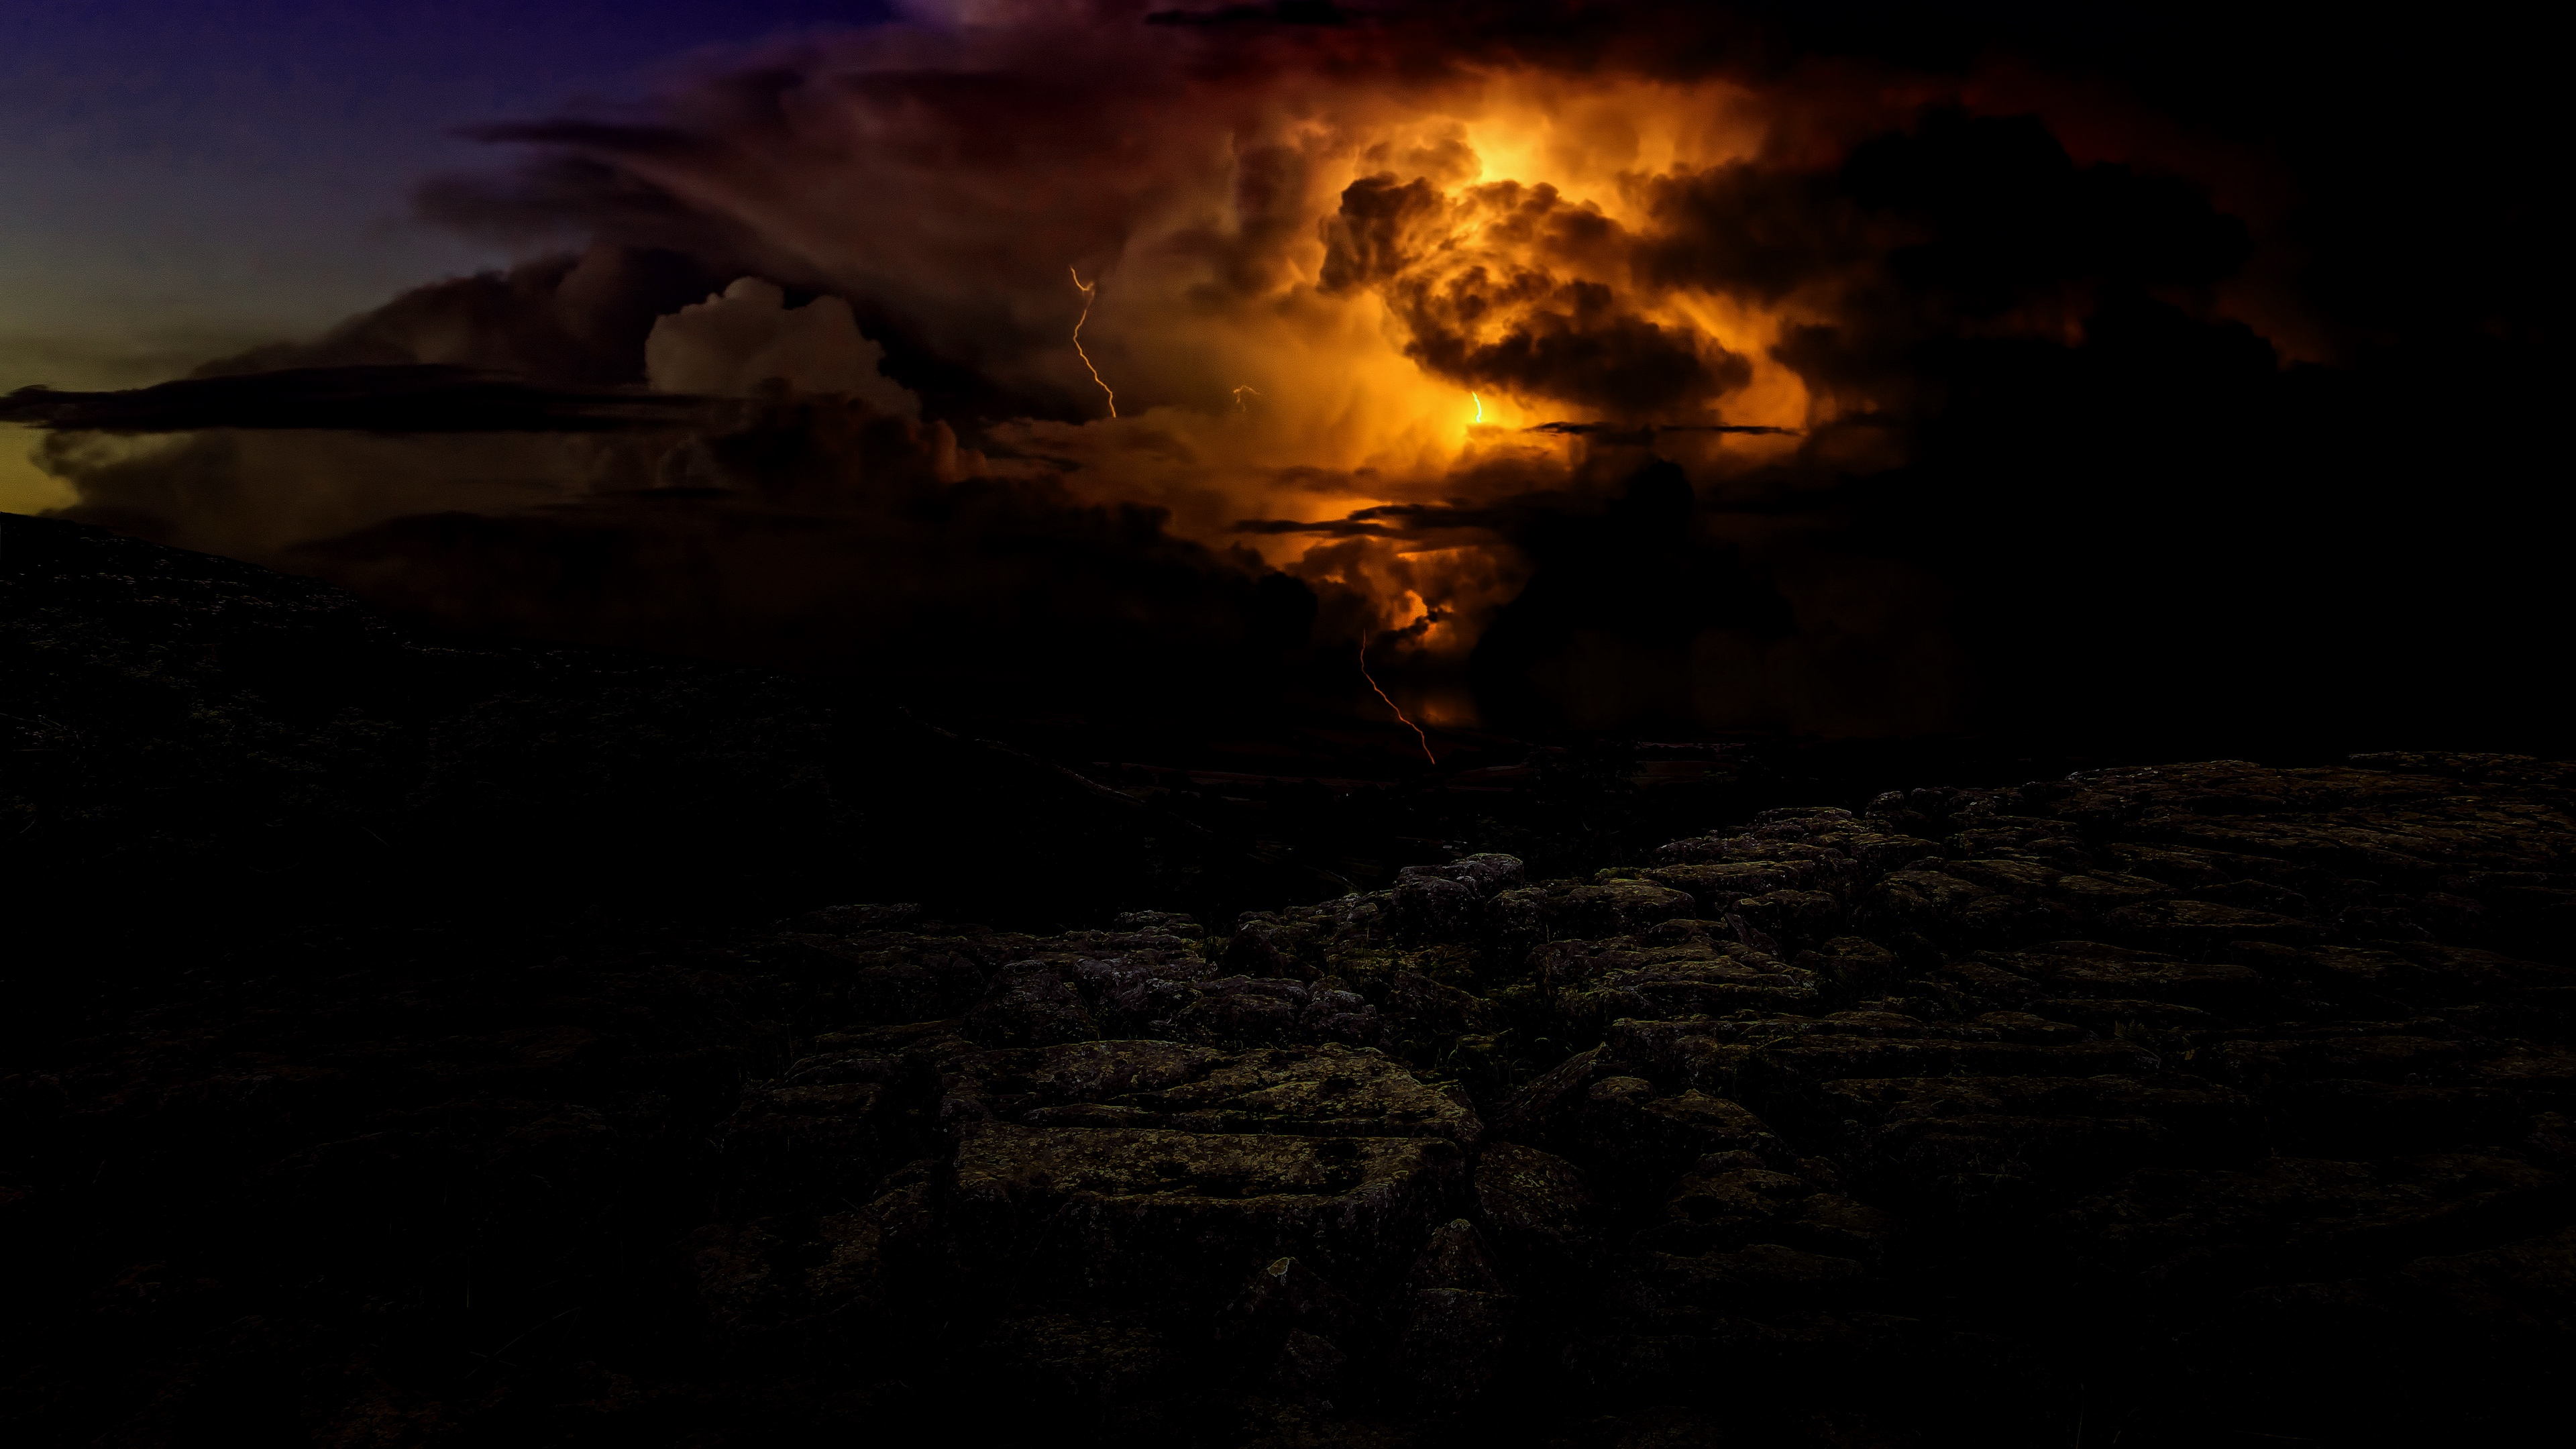 Wallpaper 4k Lightning Cloudy Storm Thunder Twilight 4k